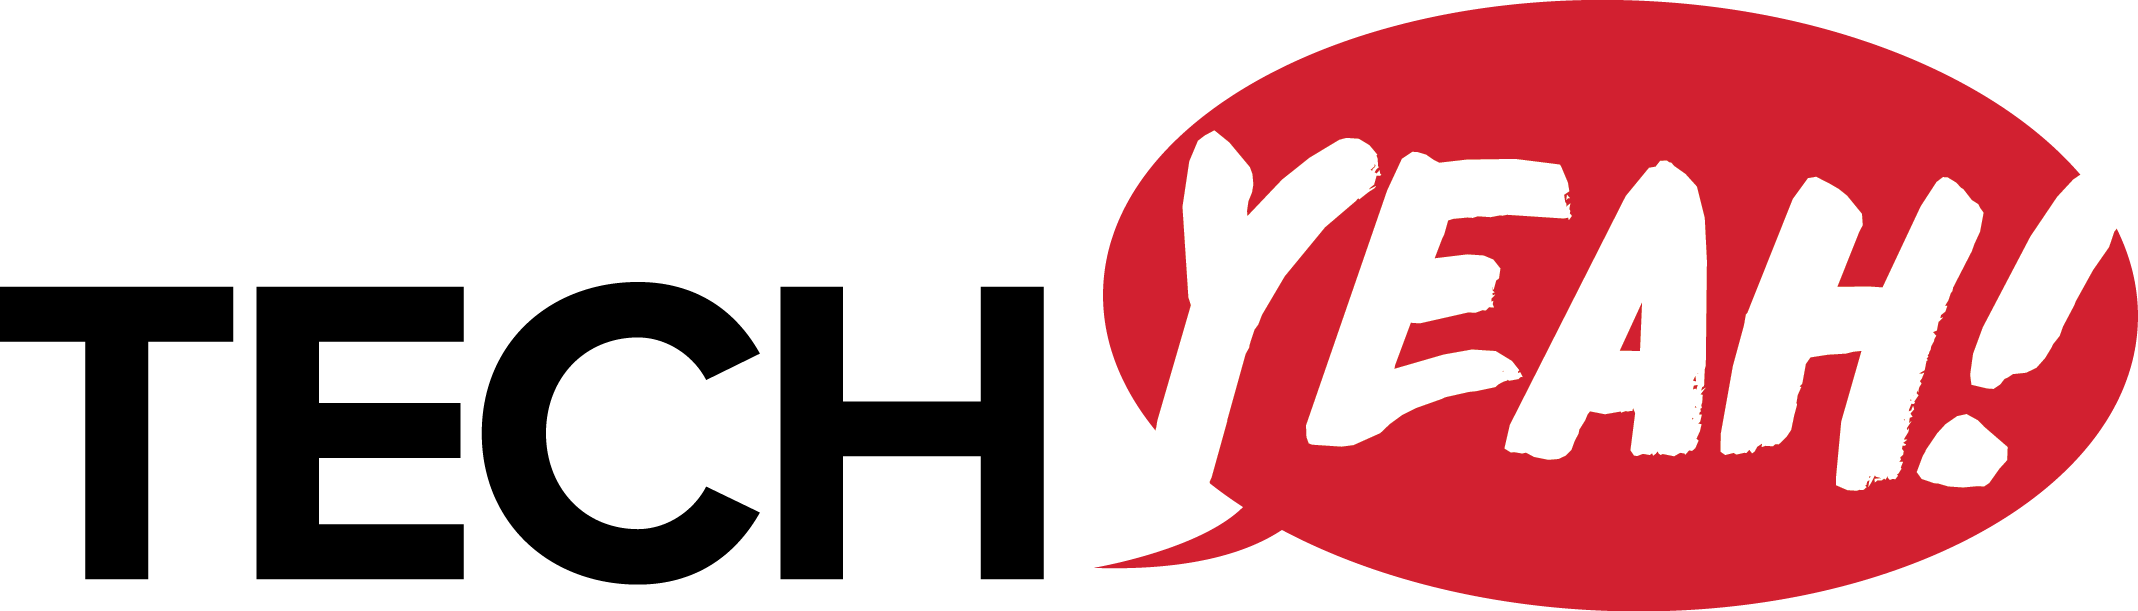 Copy of TECH YEAH 2017 HORIZONTAL LOGO black and red.png